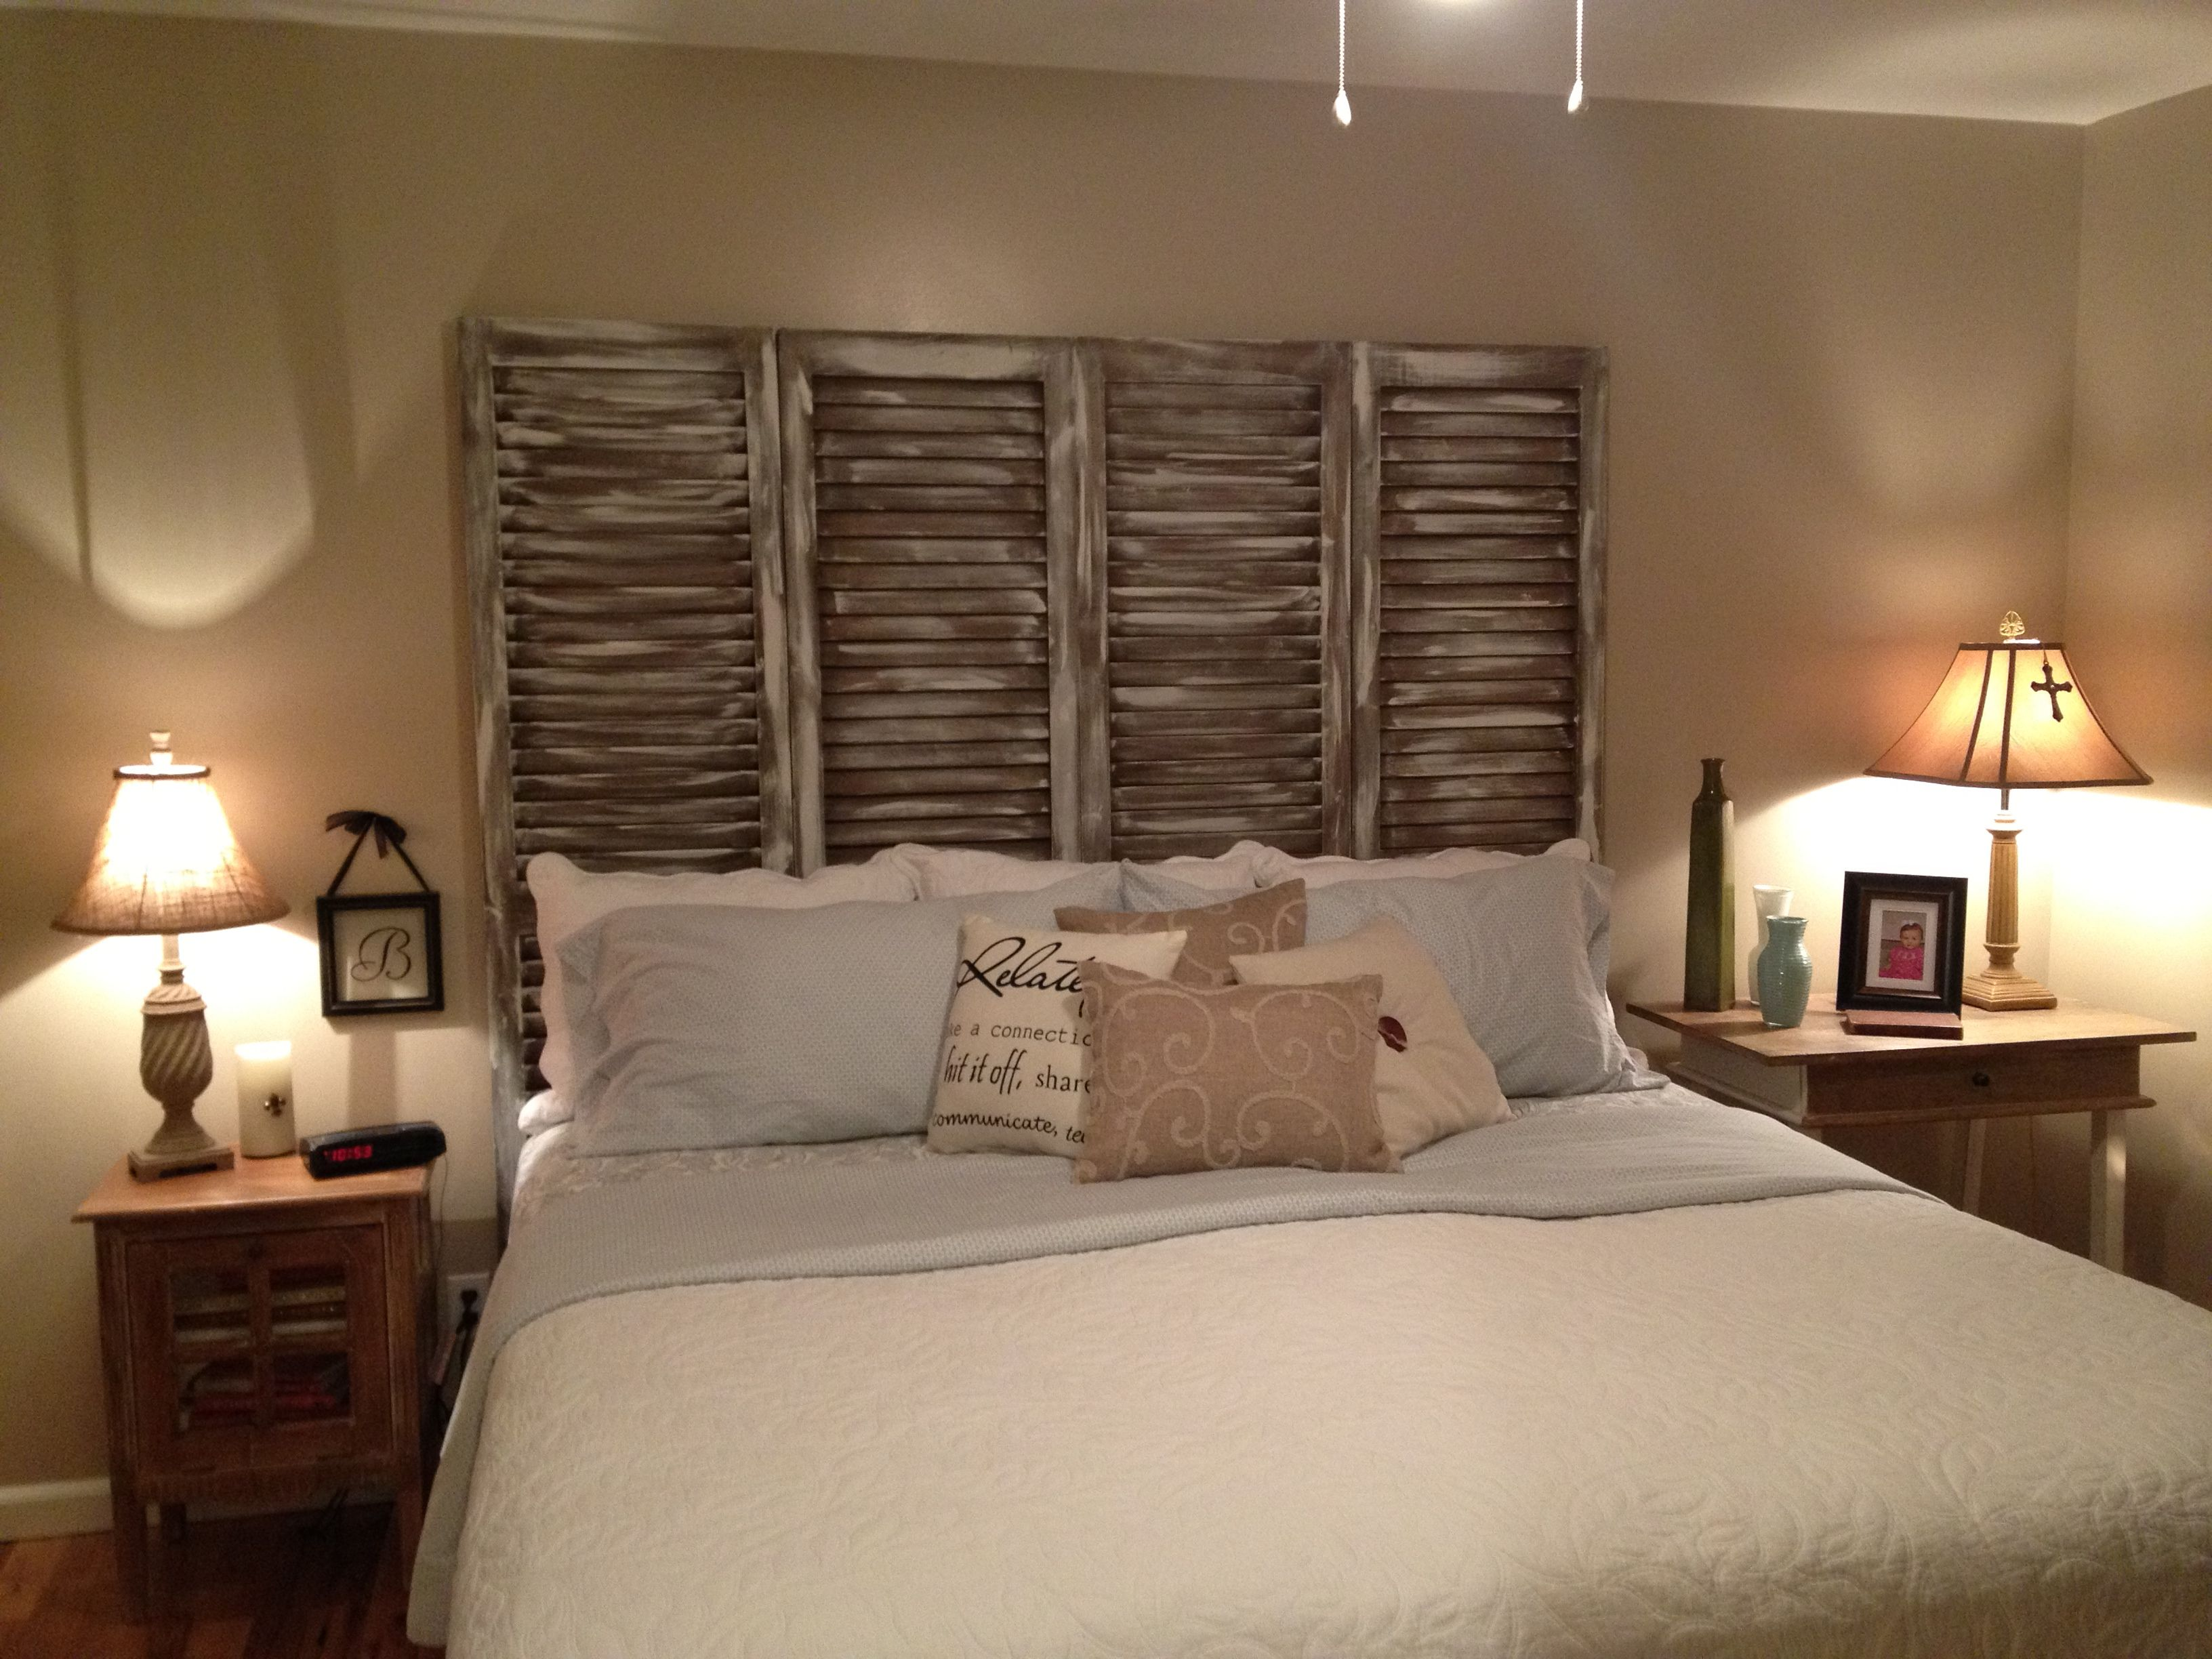 Headboard We Made Out Of Shutters